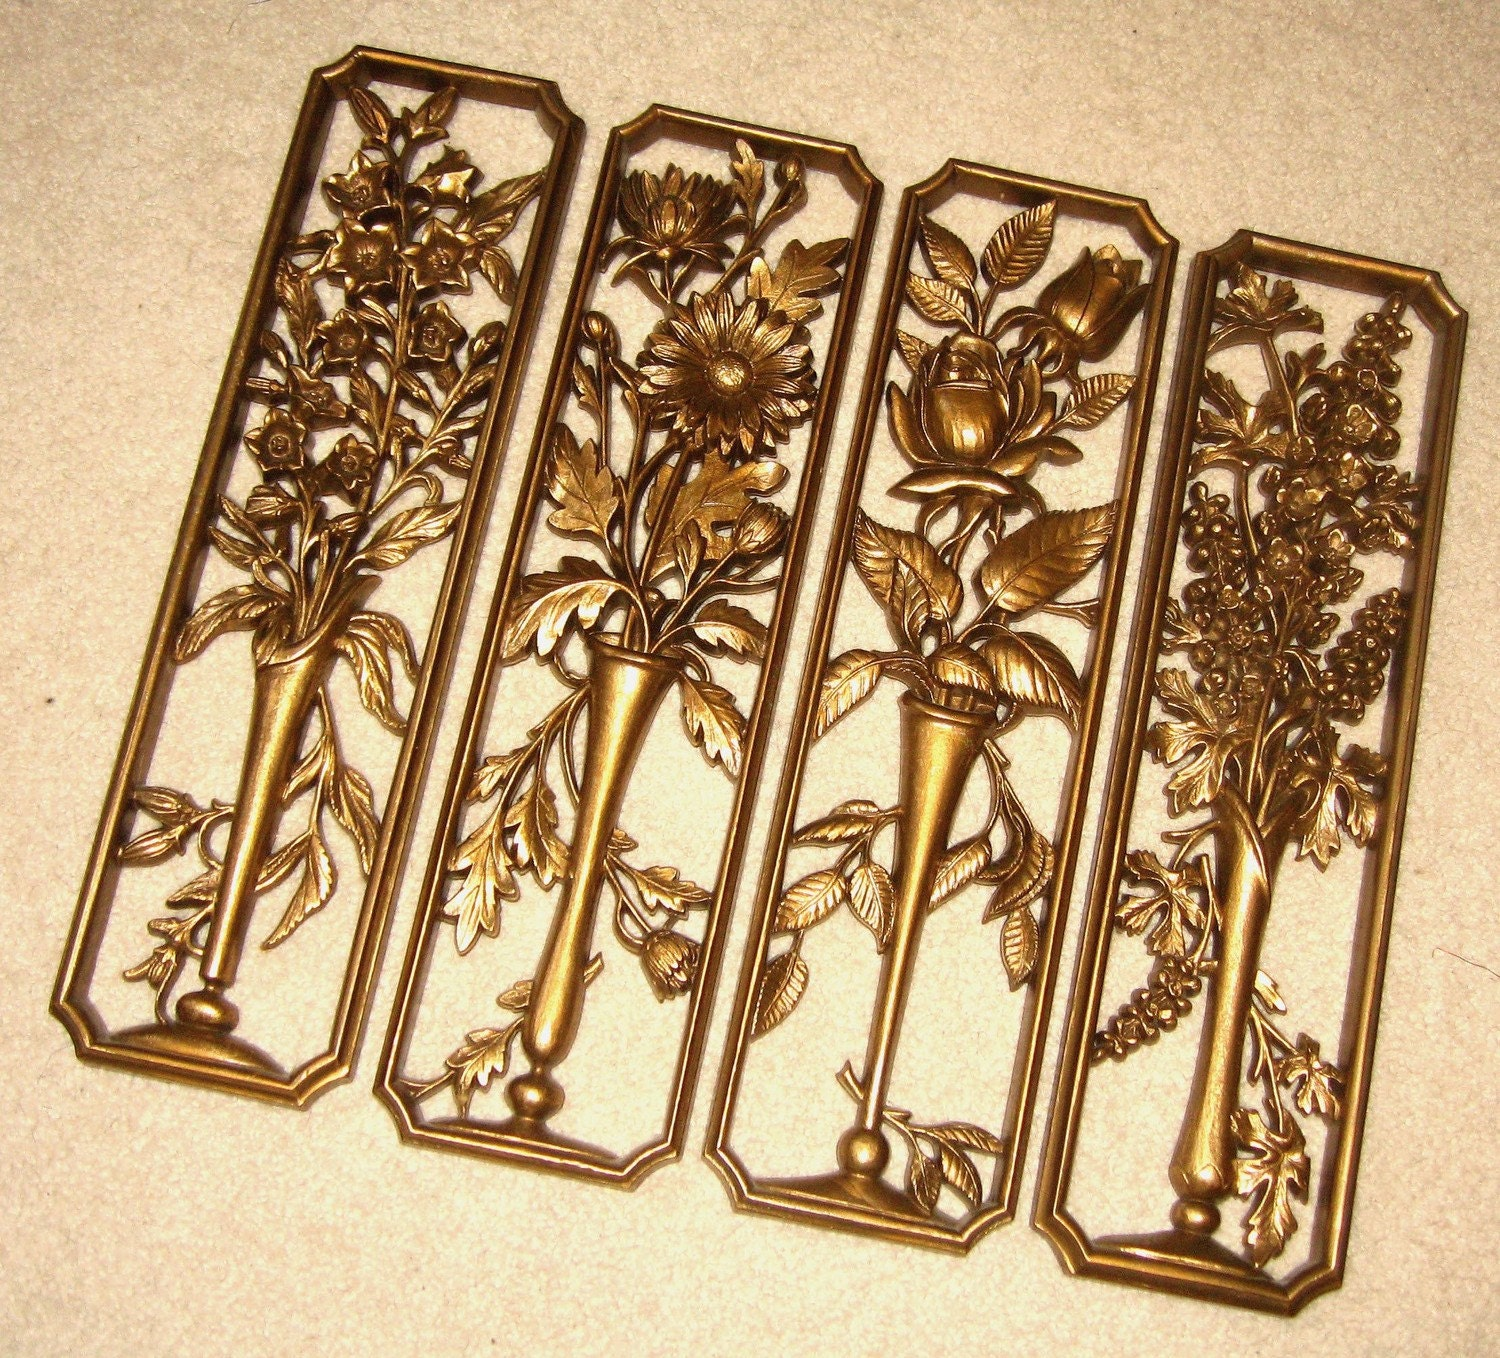 Golden Floral Wall Plaques Four Seasons Wall Decor By